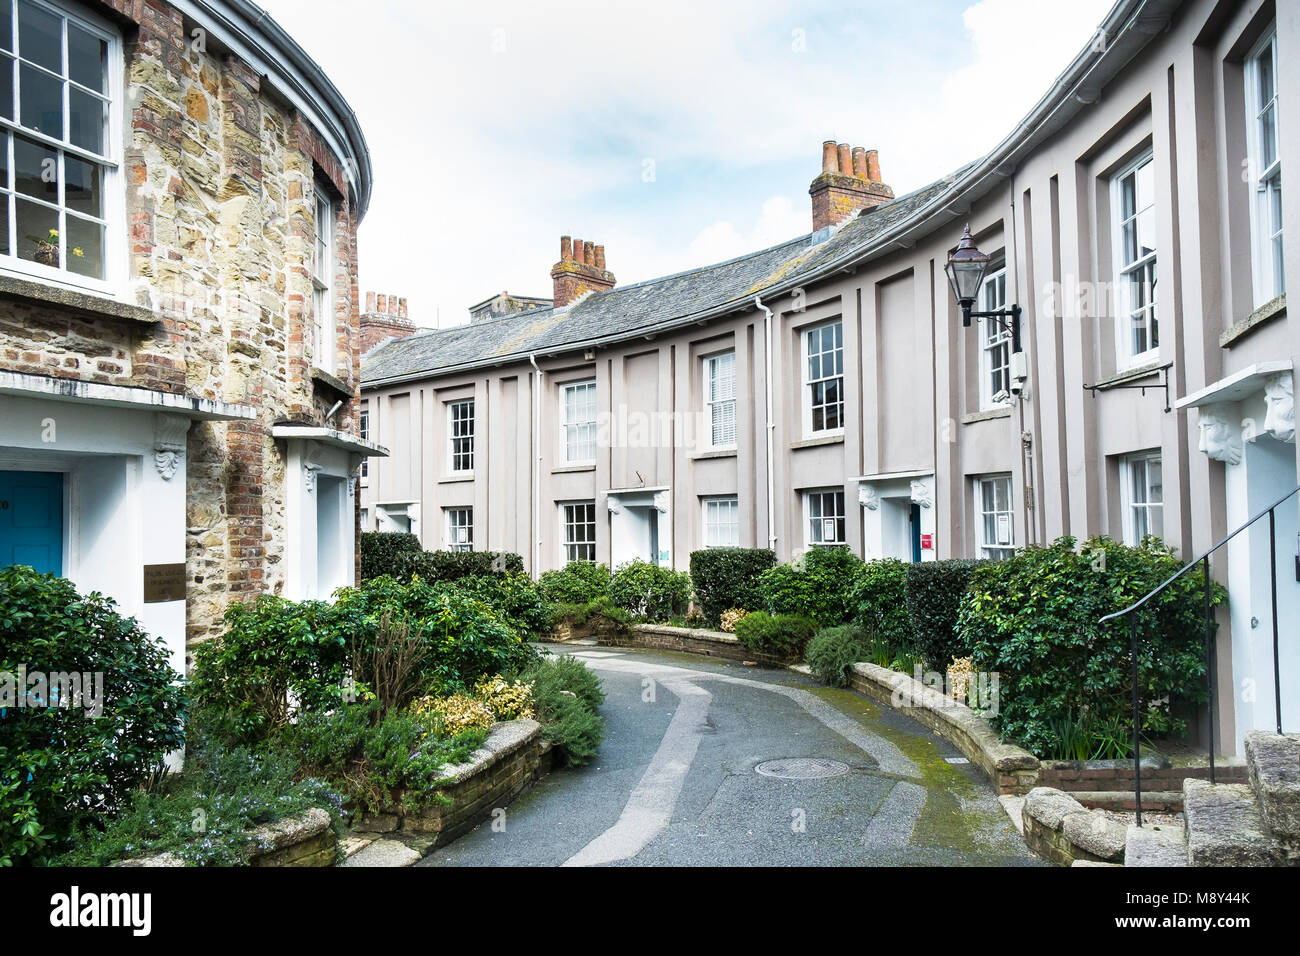 The historic Walsingham Place in Truro City centre Cornwall. - Stock Image